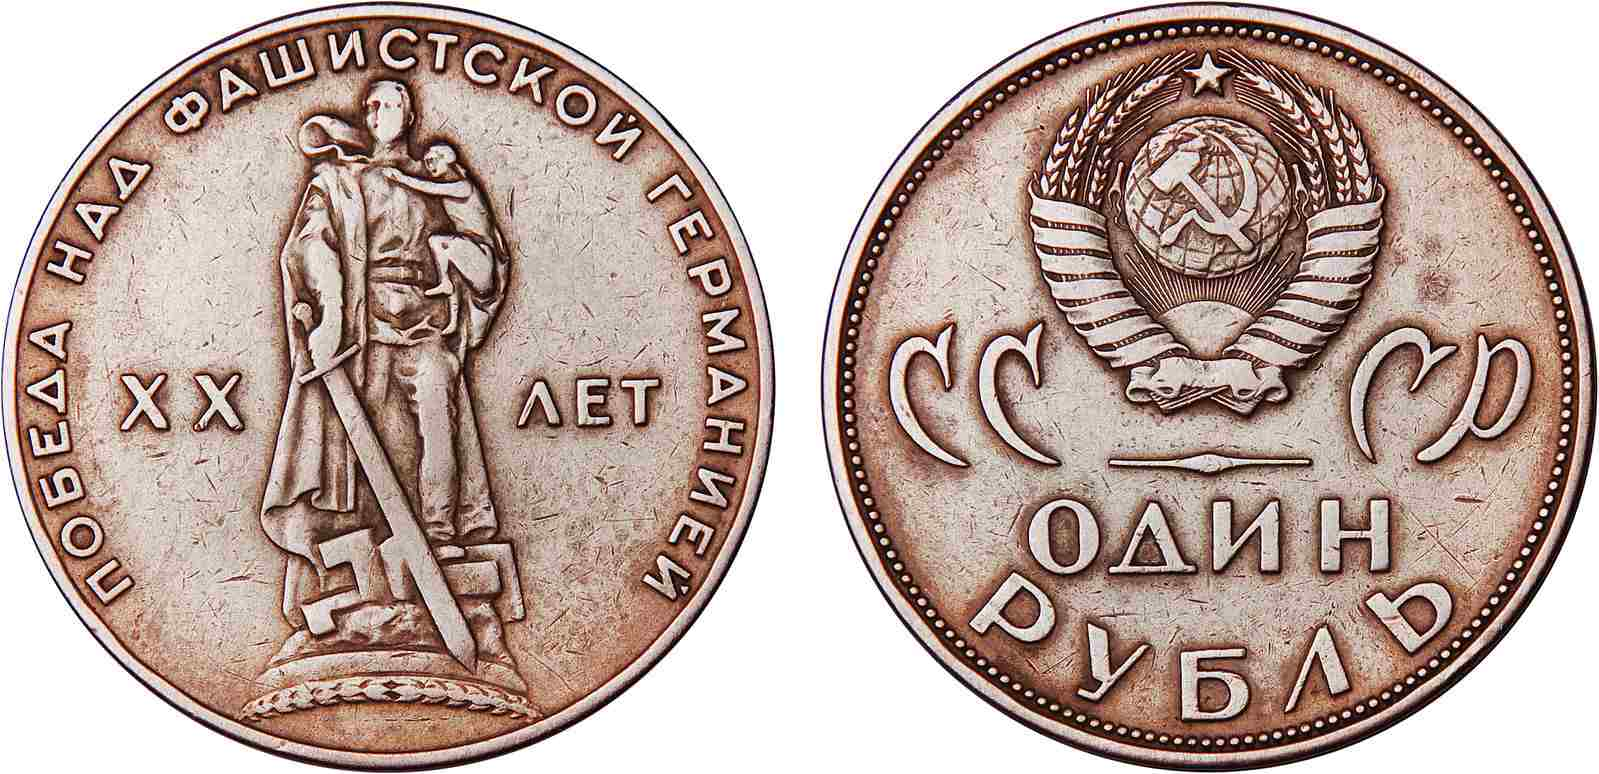 Soviet_Union-1965-Coin-1-20_Years_of_Victory_over_Fascist_Germany